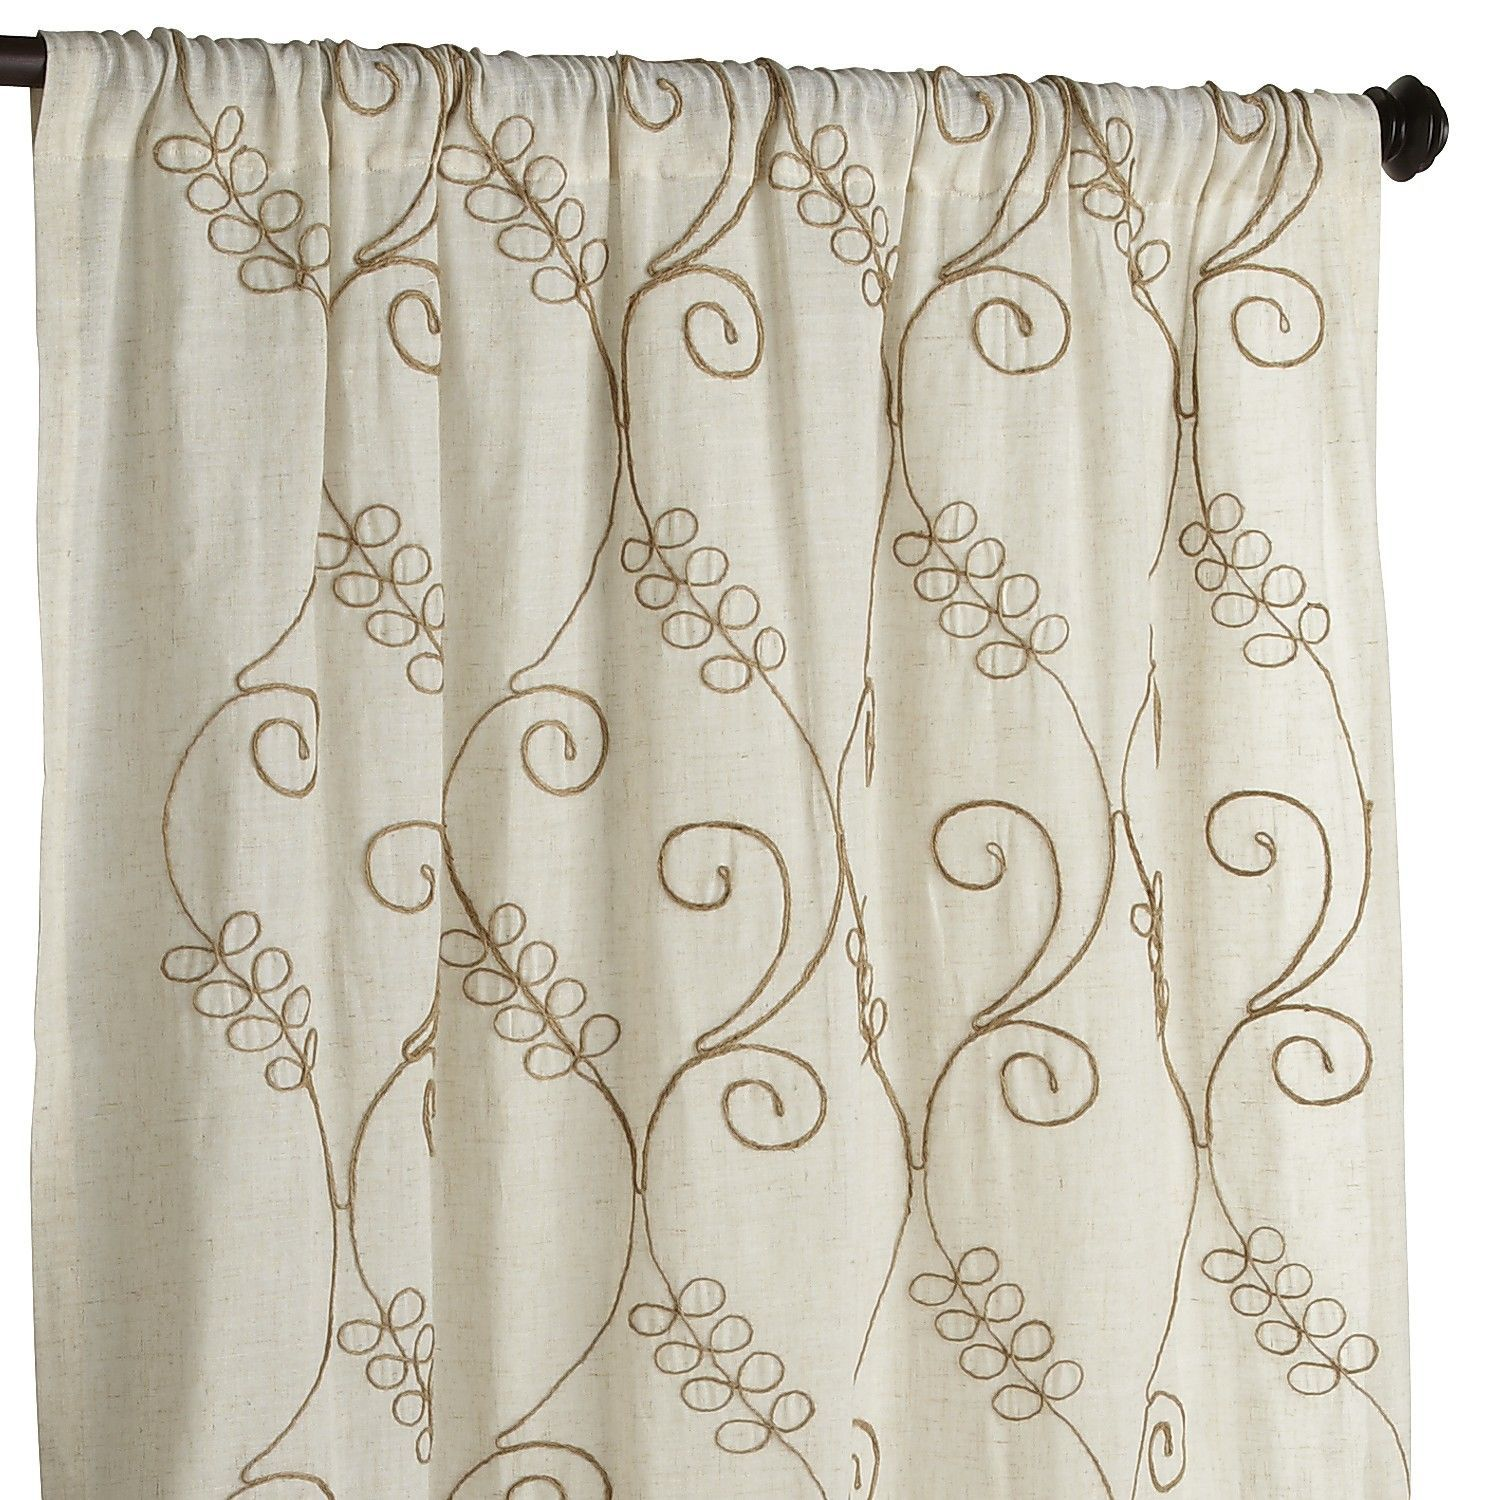 Embroidered Jute Curtain Curtains Drapes Curtains Curtain Patterns